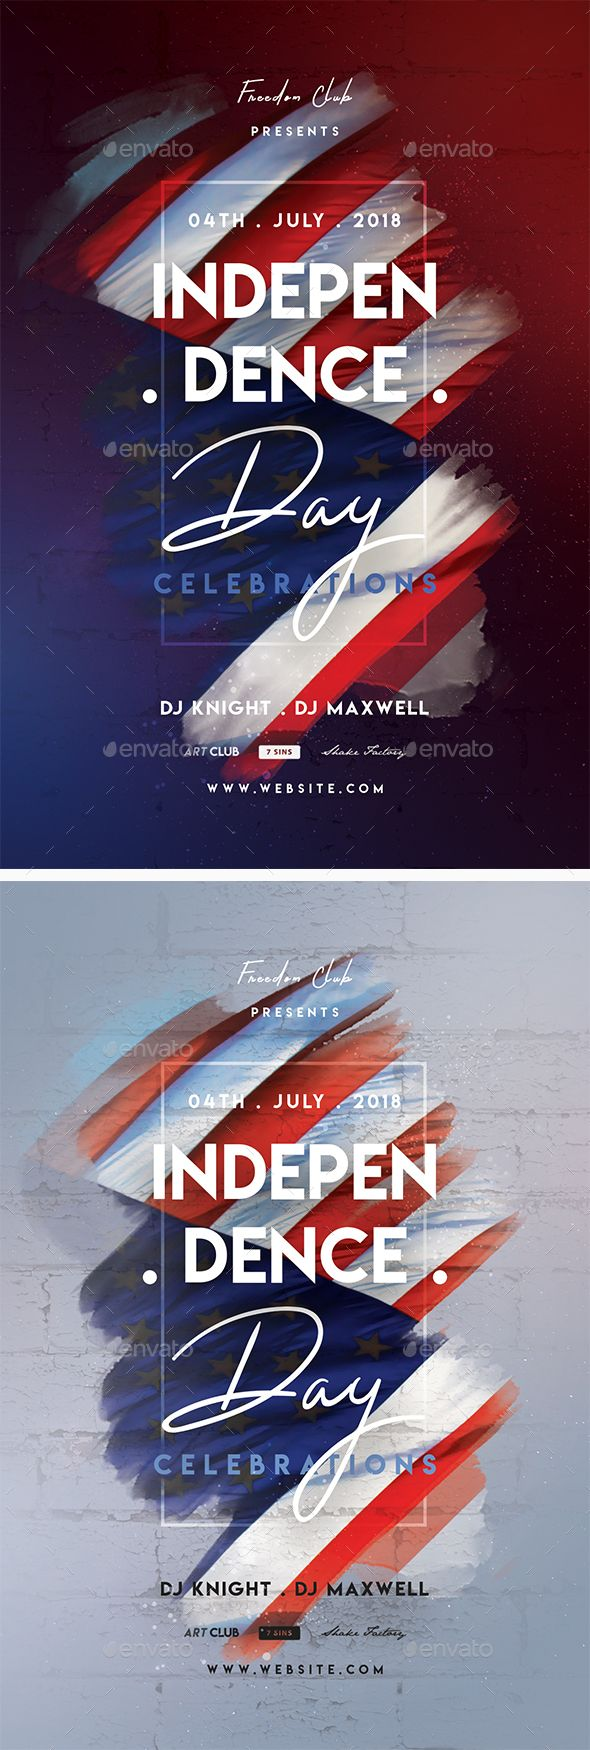 Independence Day Party Flyer Template PSD. Download here: graphicriver.net/…